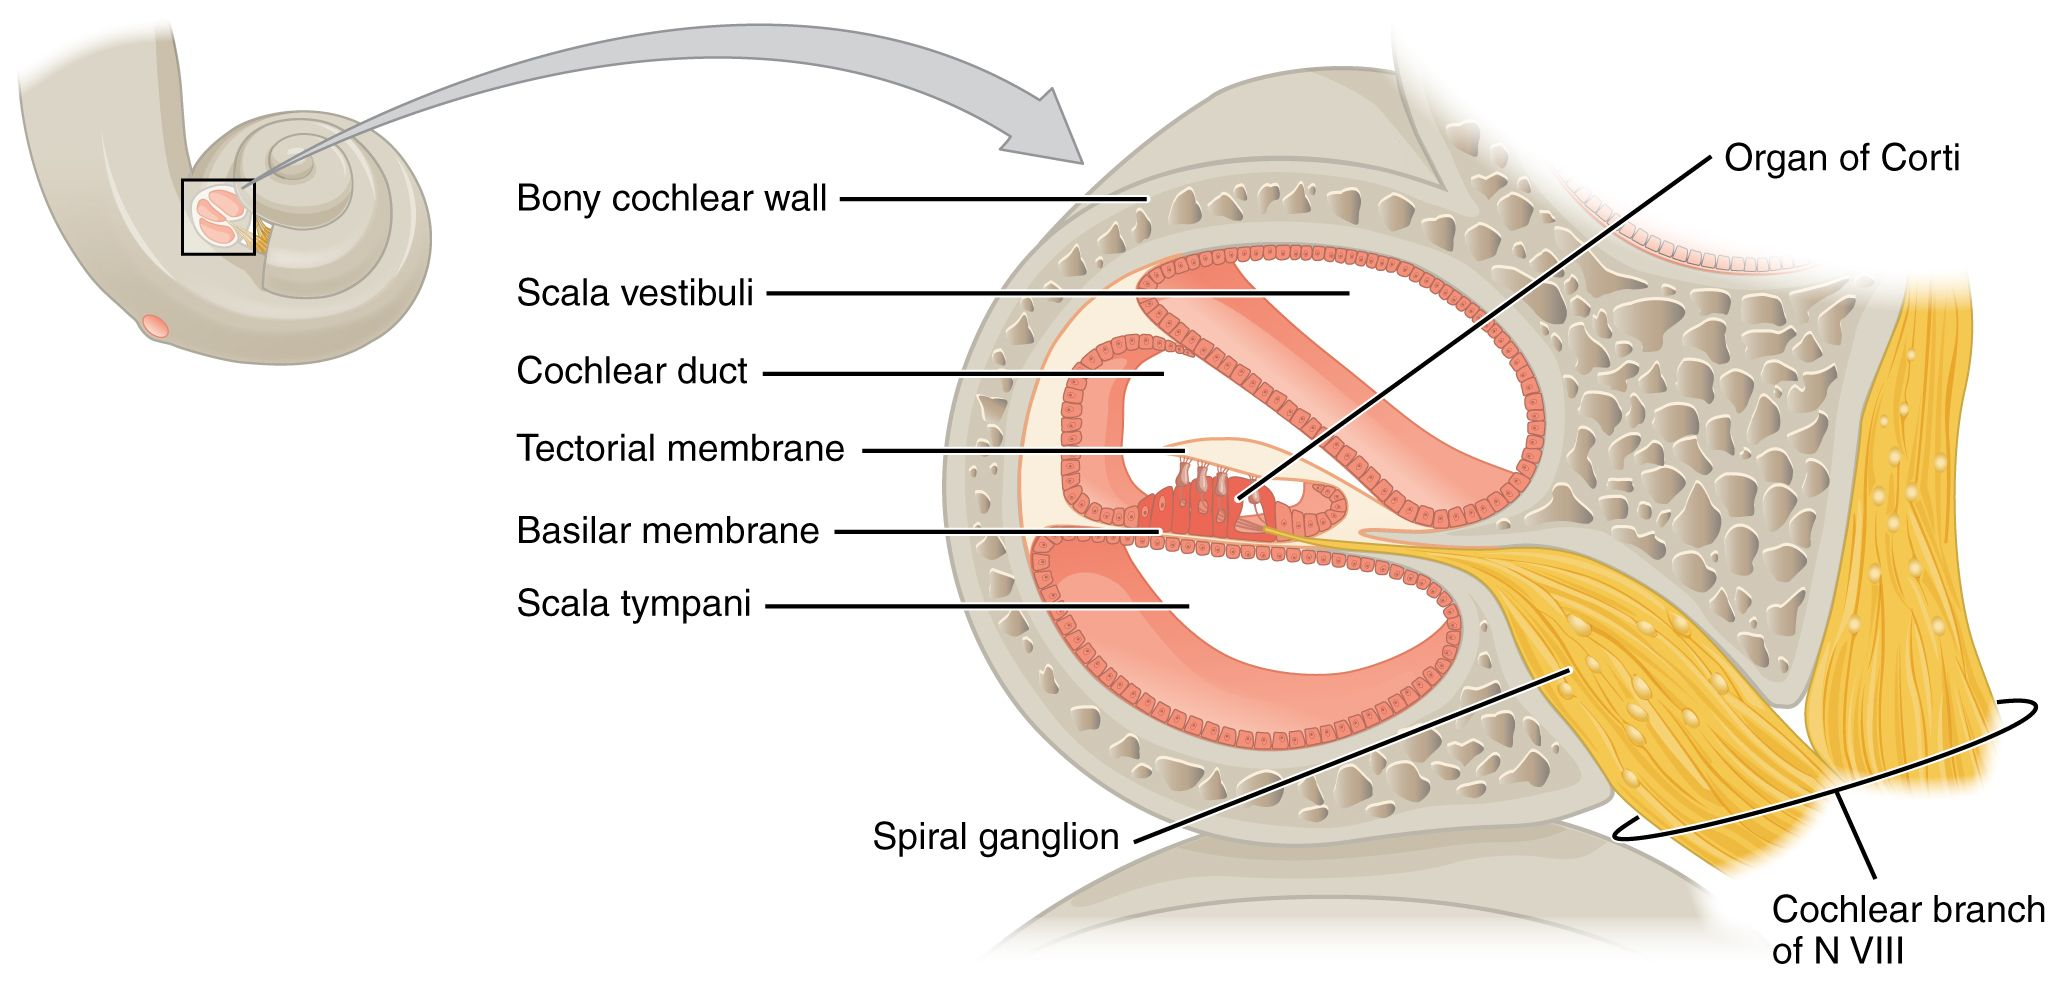 The Organ of Corti (organum spirale) is the sensory epithelium in ...